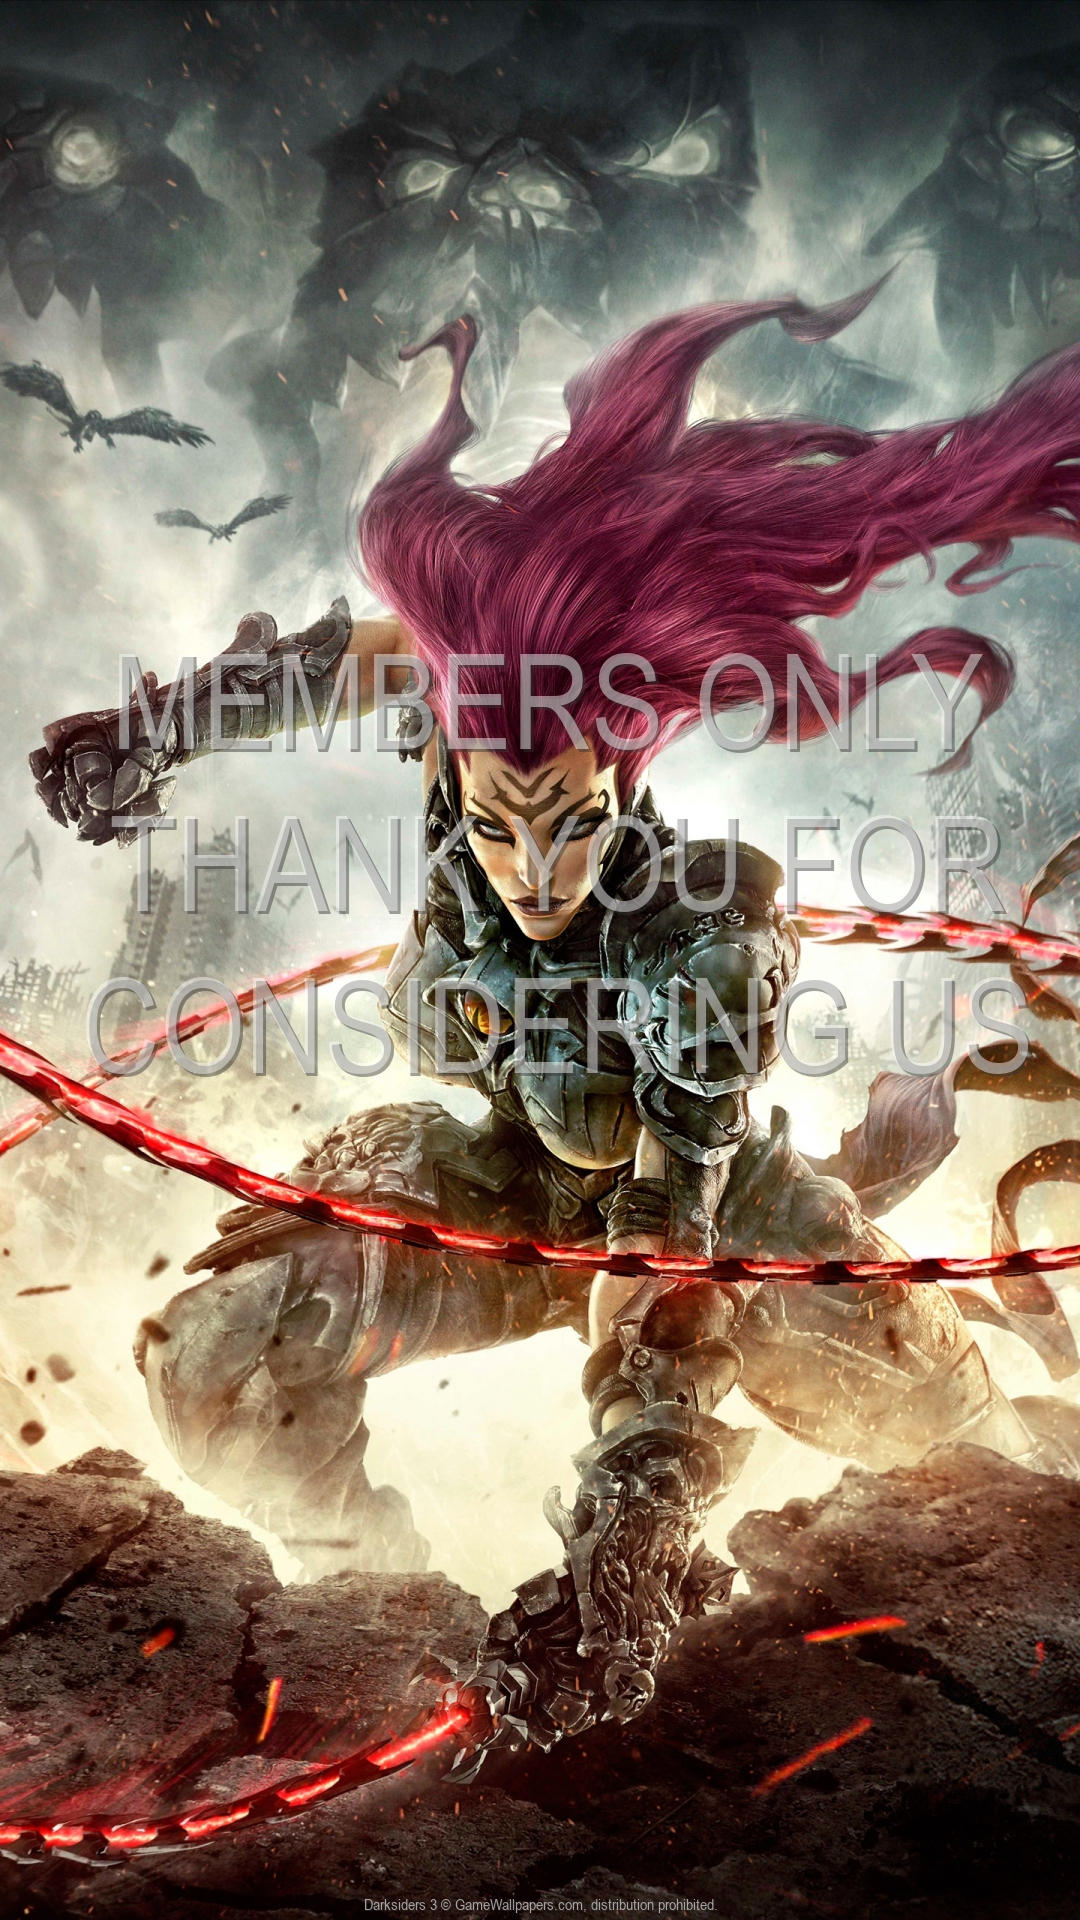 Darksiders 3 1920x1080 Mobile wallpaper or background 01